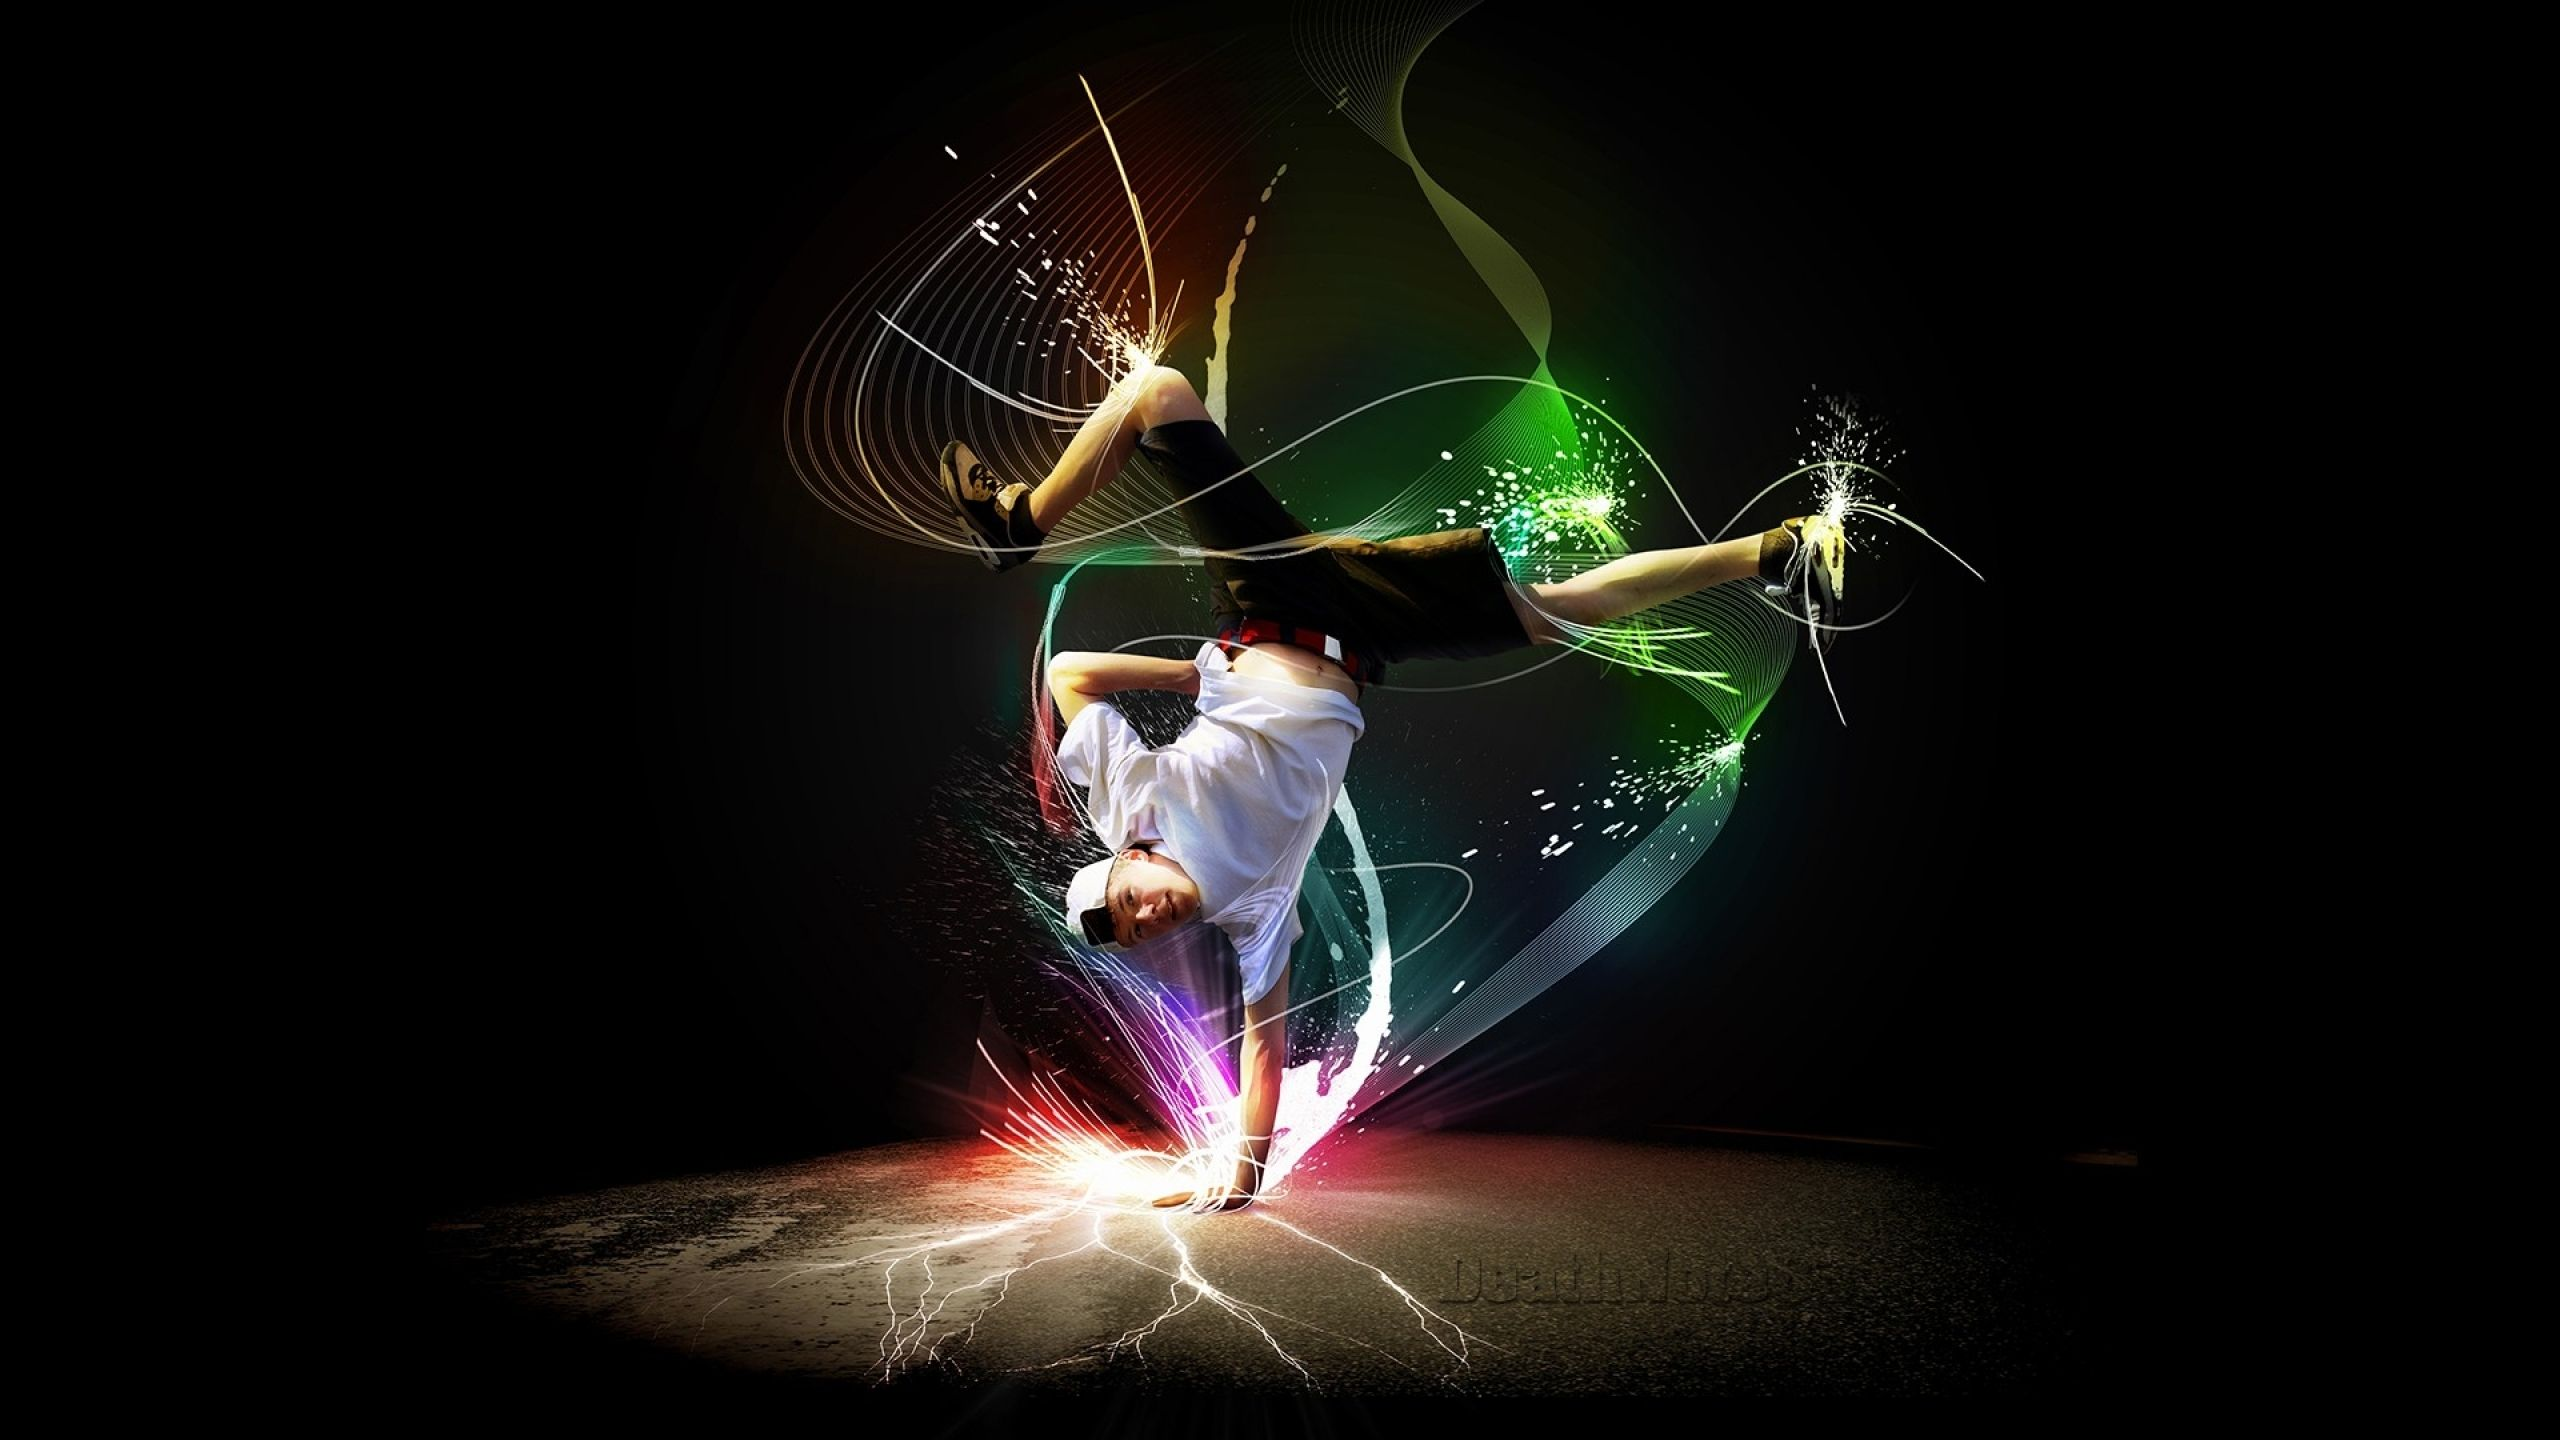 dance breakdancing bboy 1920x1080 wallpaper Art HD